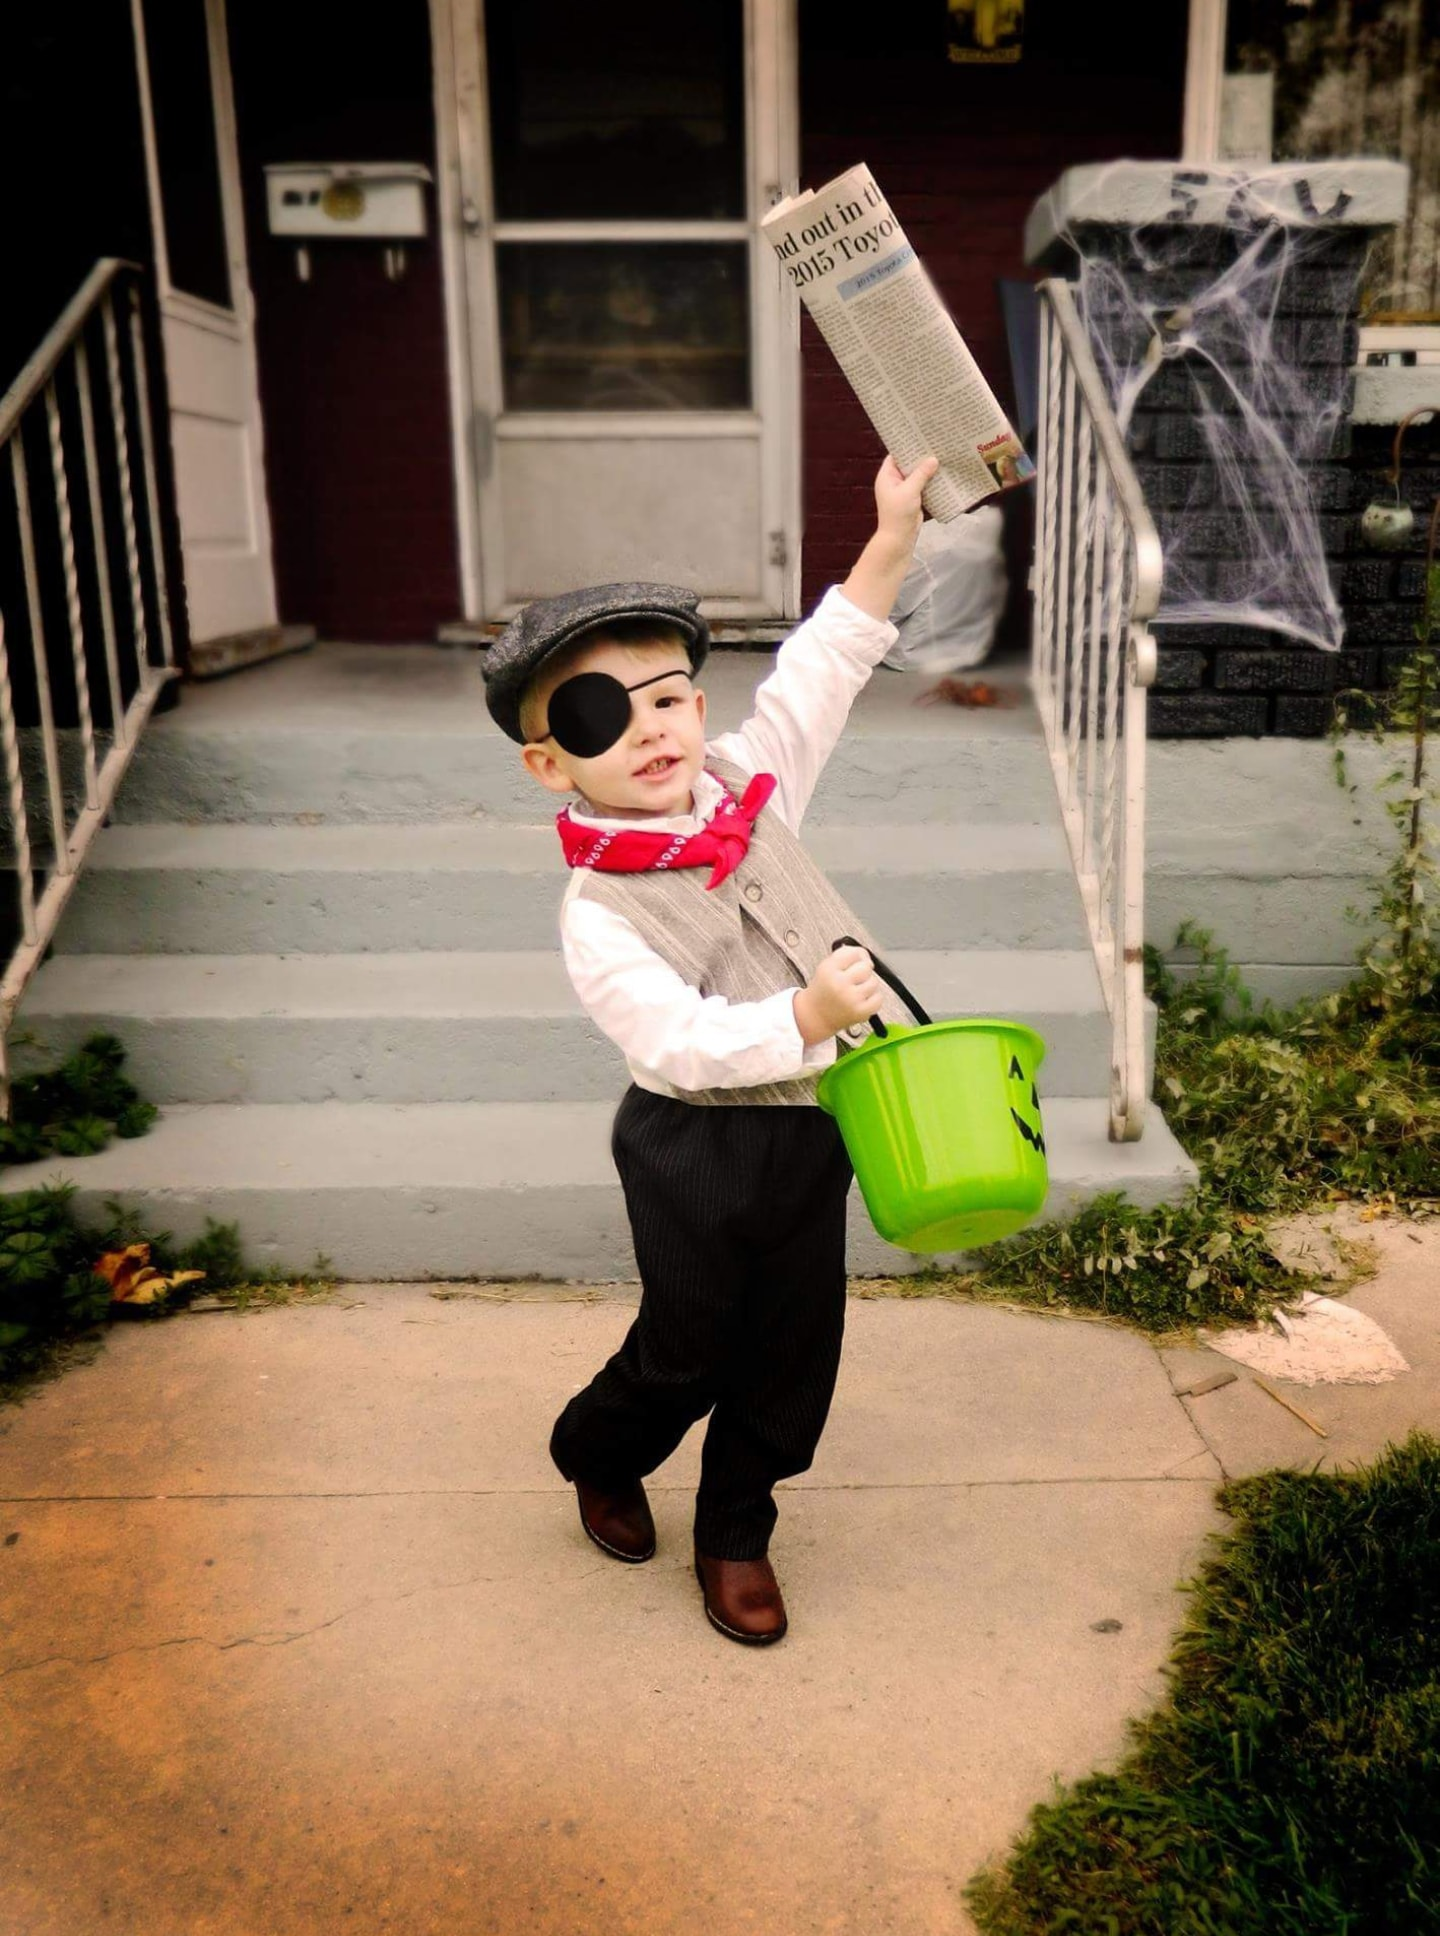 Boy wearing Newsies kids Halloween costume holds candy bucket and newspaper in the air.